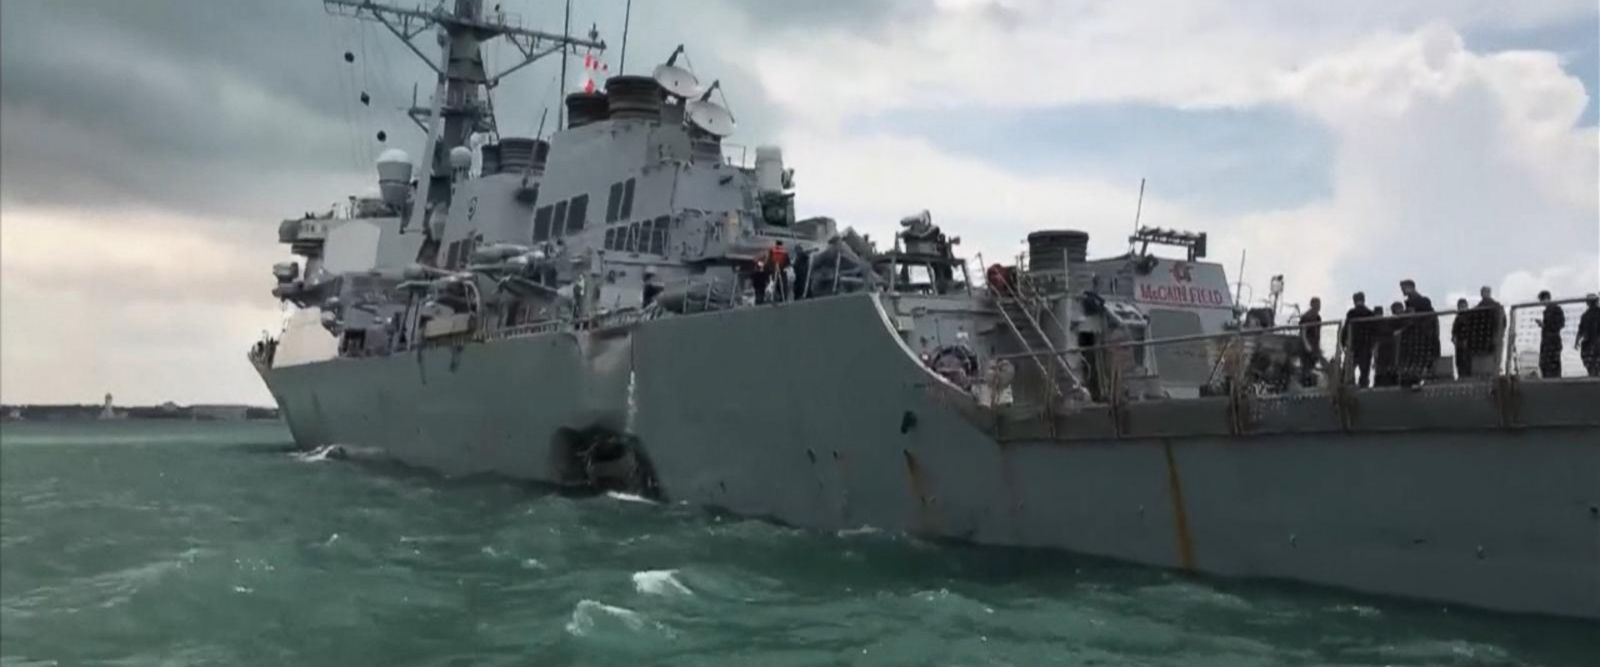 VIDEO: 10 missing after US Navy destroyer collides with merchant ship off Singapore